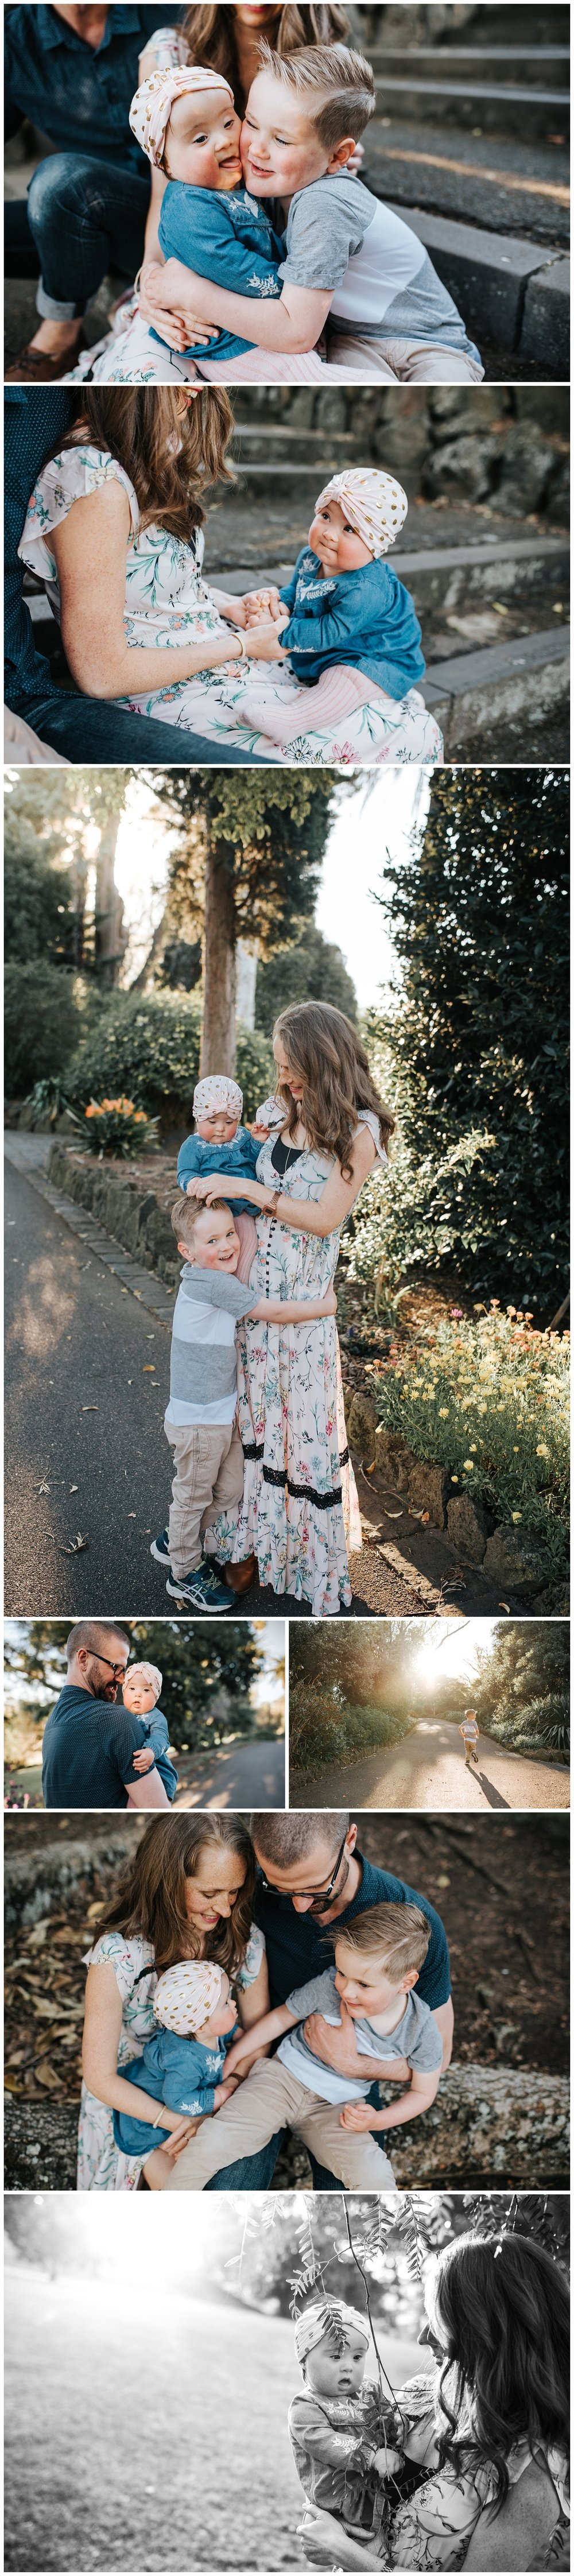 lifestyle family photography in melbourne